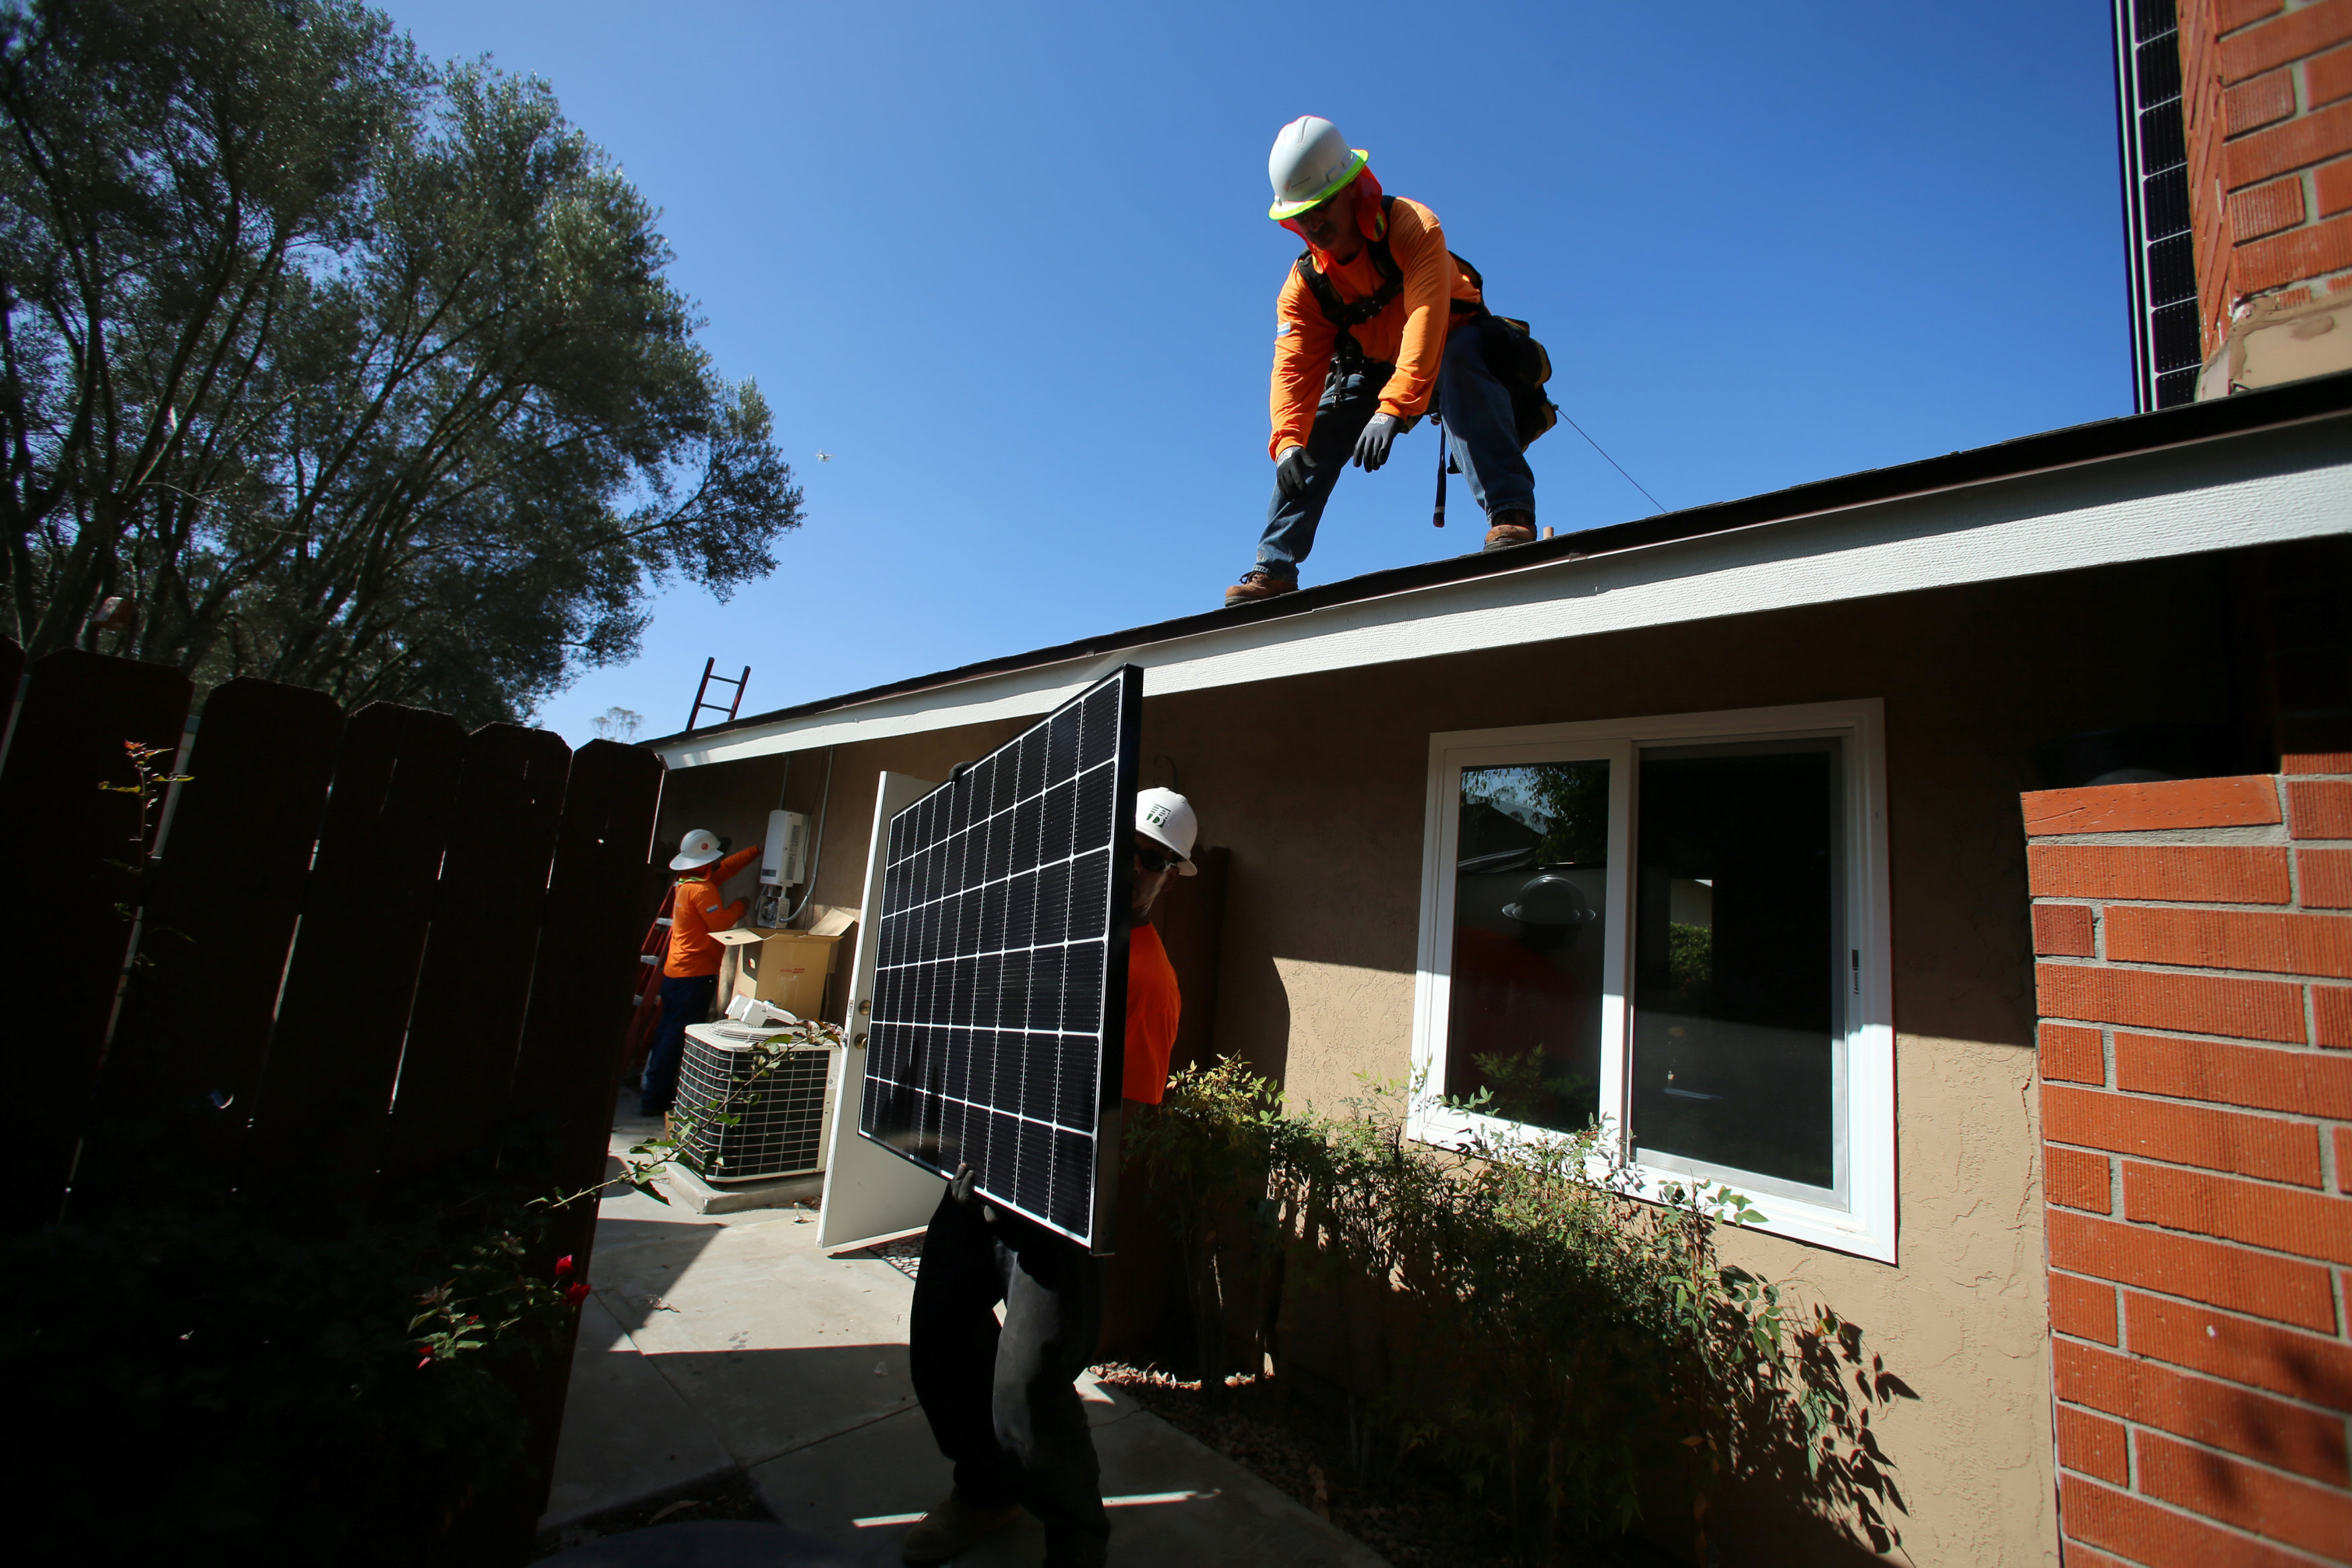 Workers install solar panels on the roof of a home in Scripps Ranch, northeastern San Diego, on Oct. 14. | REUTERS